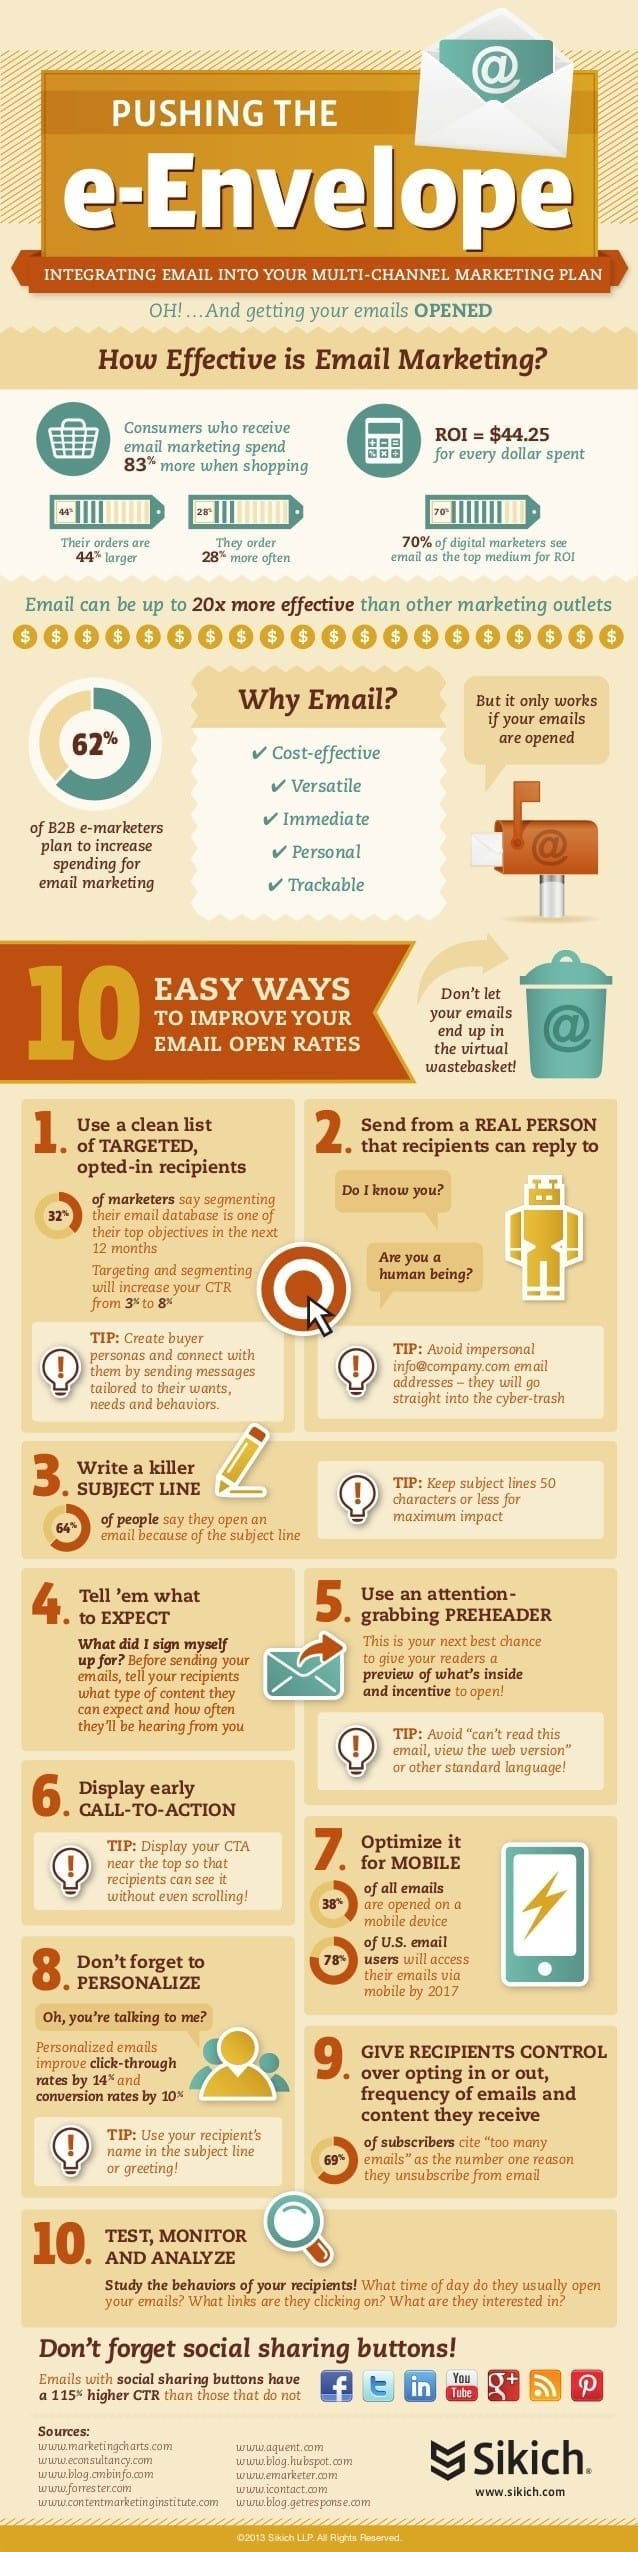 15077-improve-your-email-open-rates-email-marketing-infographic-3379638